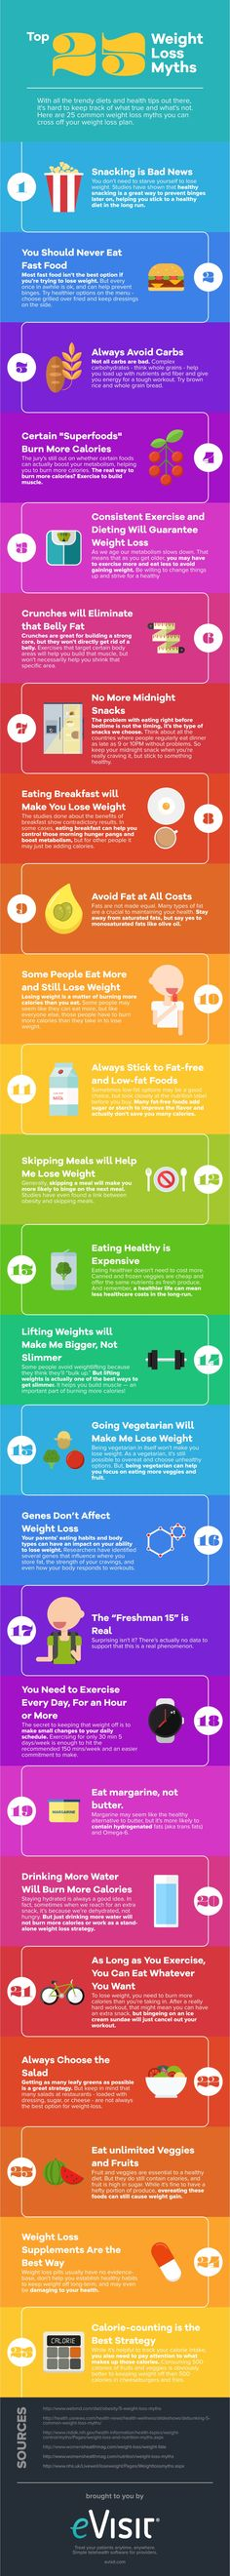 Top 25 Weight Loss Myths Infographic   http://evisit.com/infographic-how-to-lose-weight/